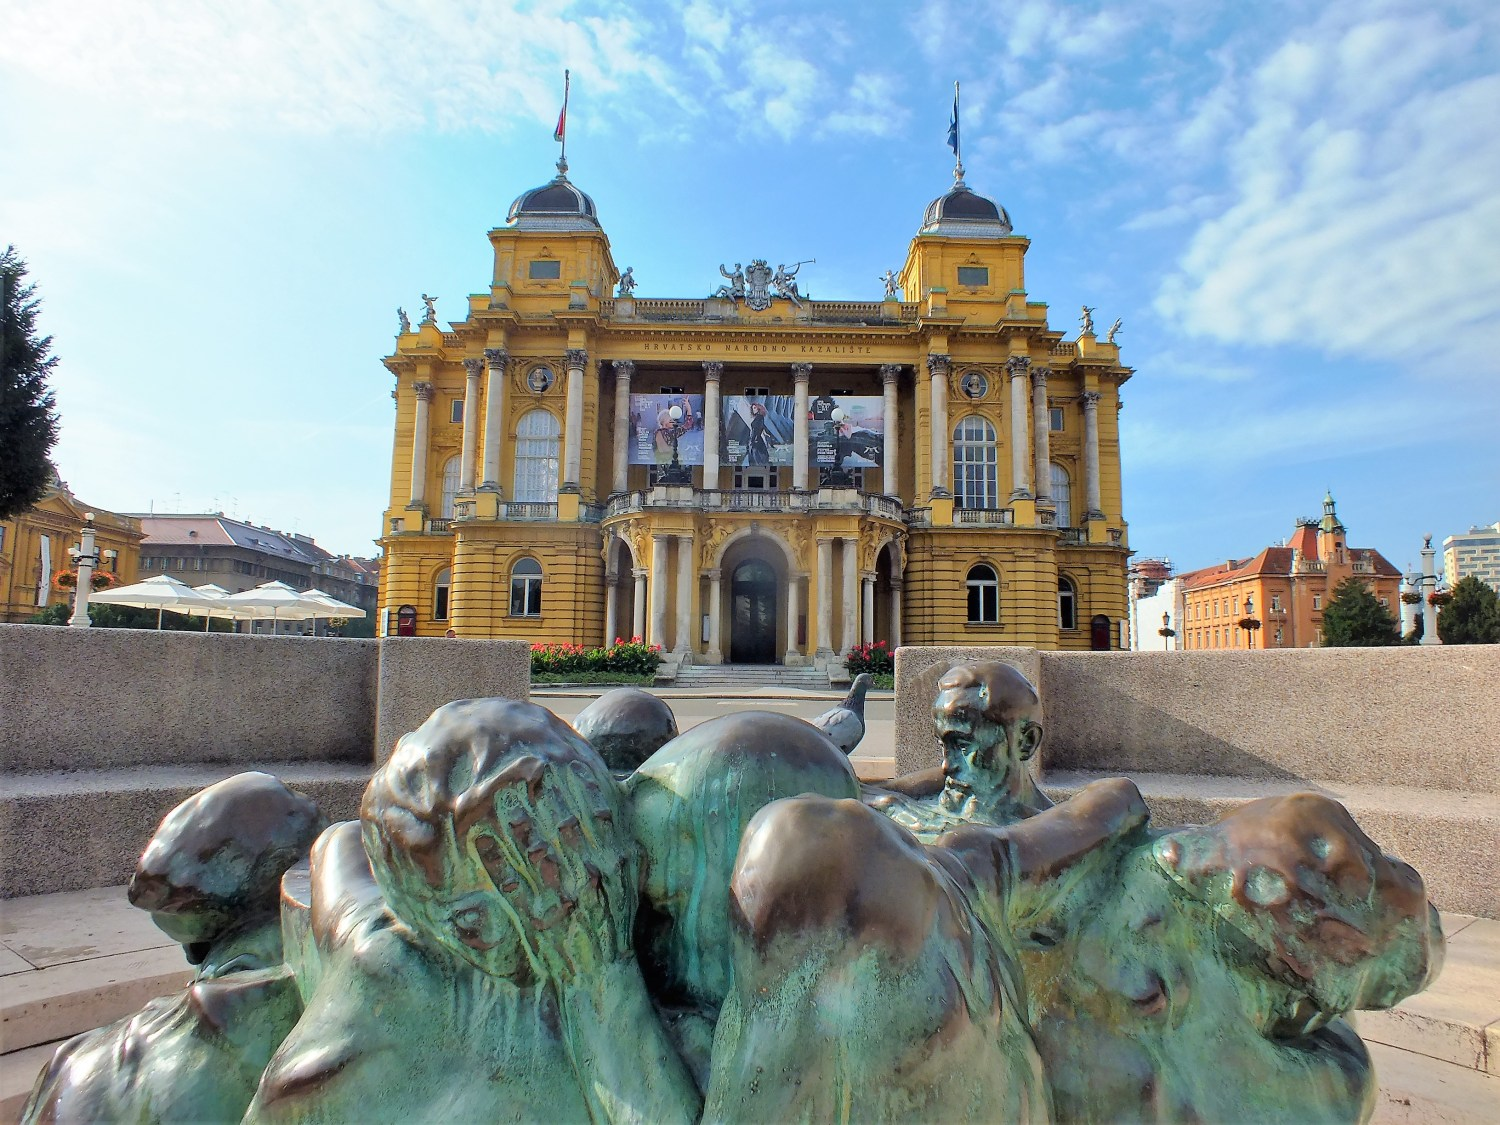 Zagreb has the charm of a small Central European metropolis